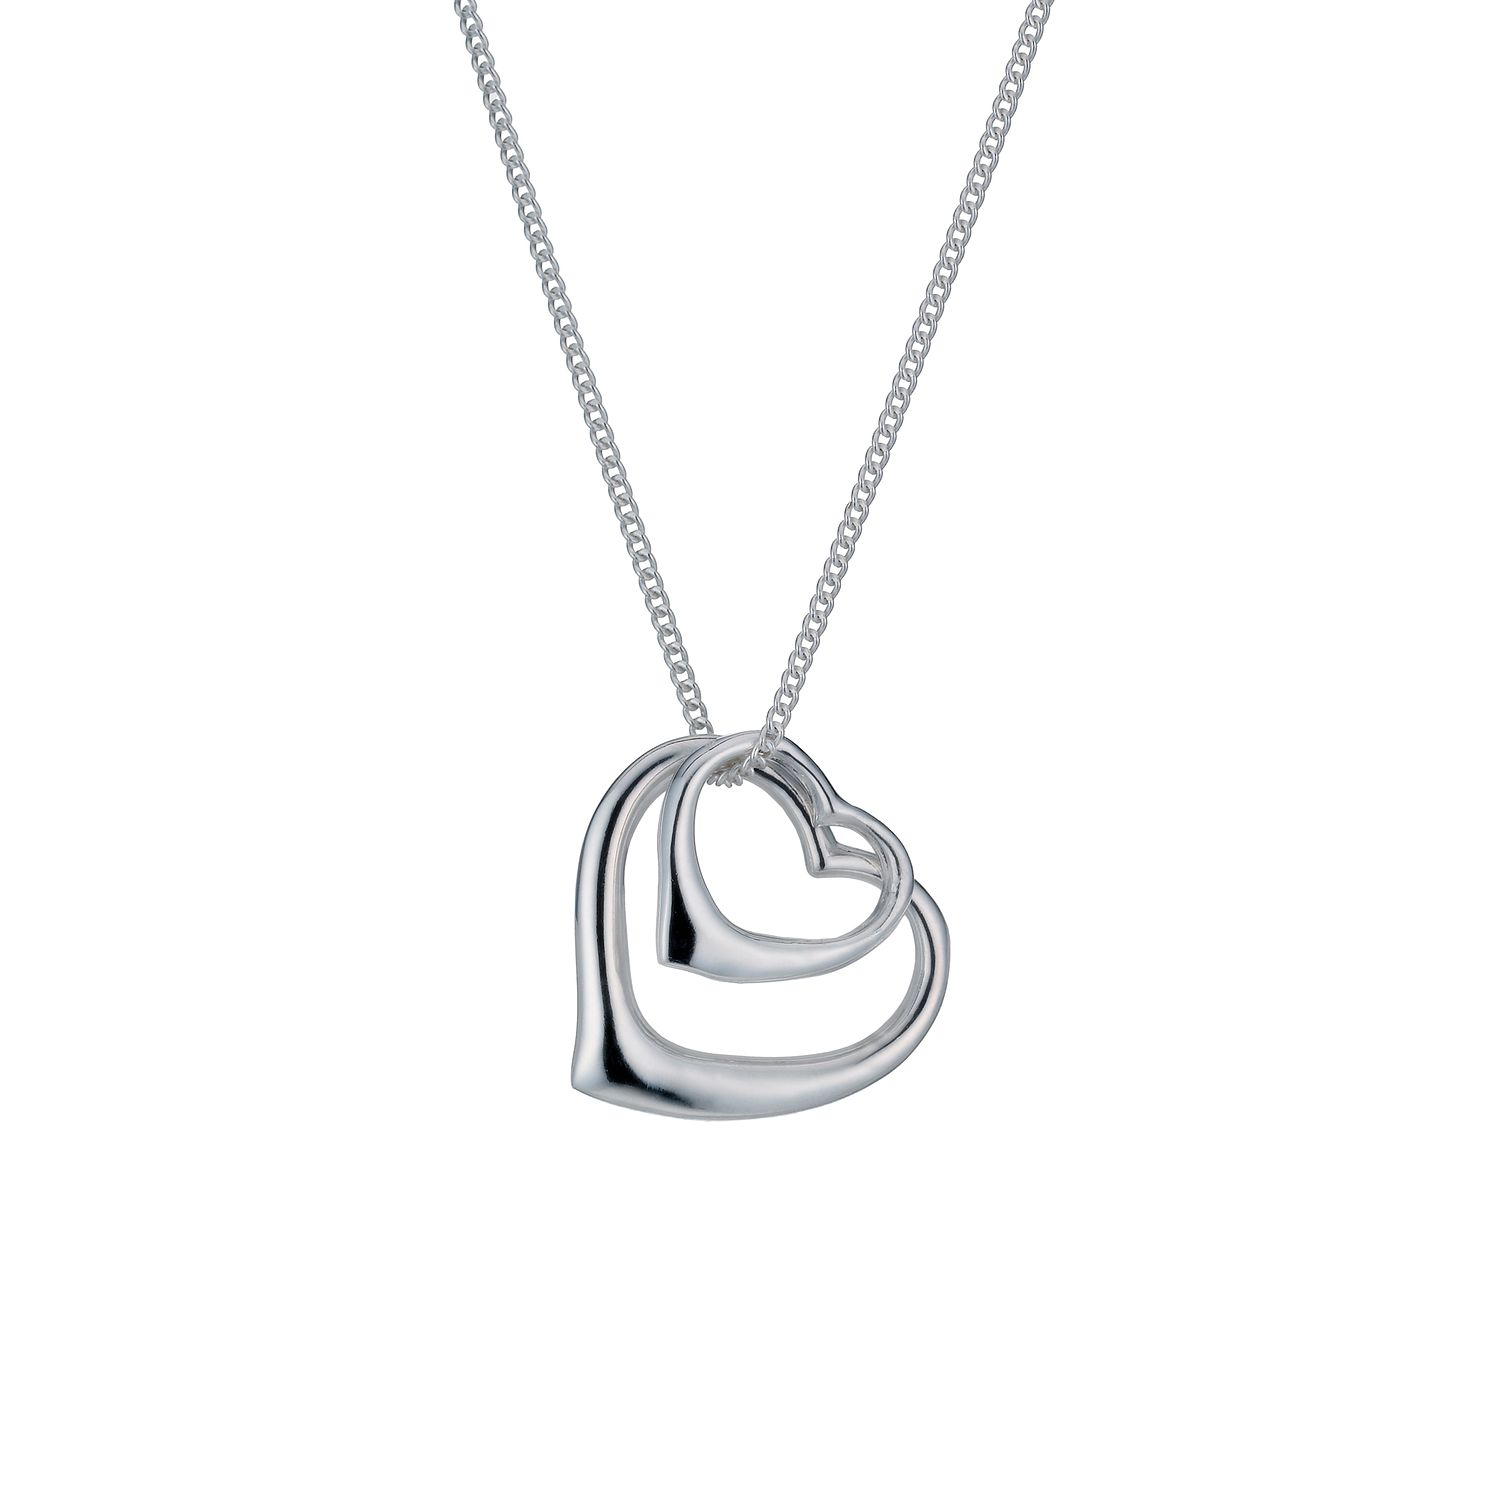 Necklaces chains pendants ernest jones sterling silver double open heart pendant product number 9967133 mozeypictures Image collections